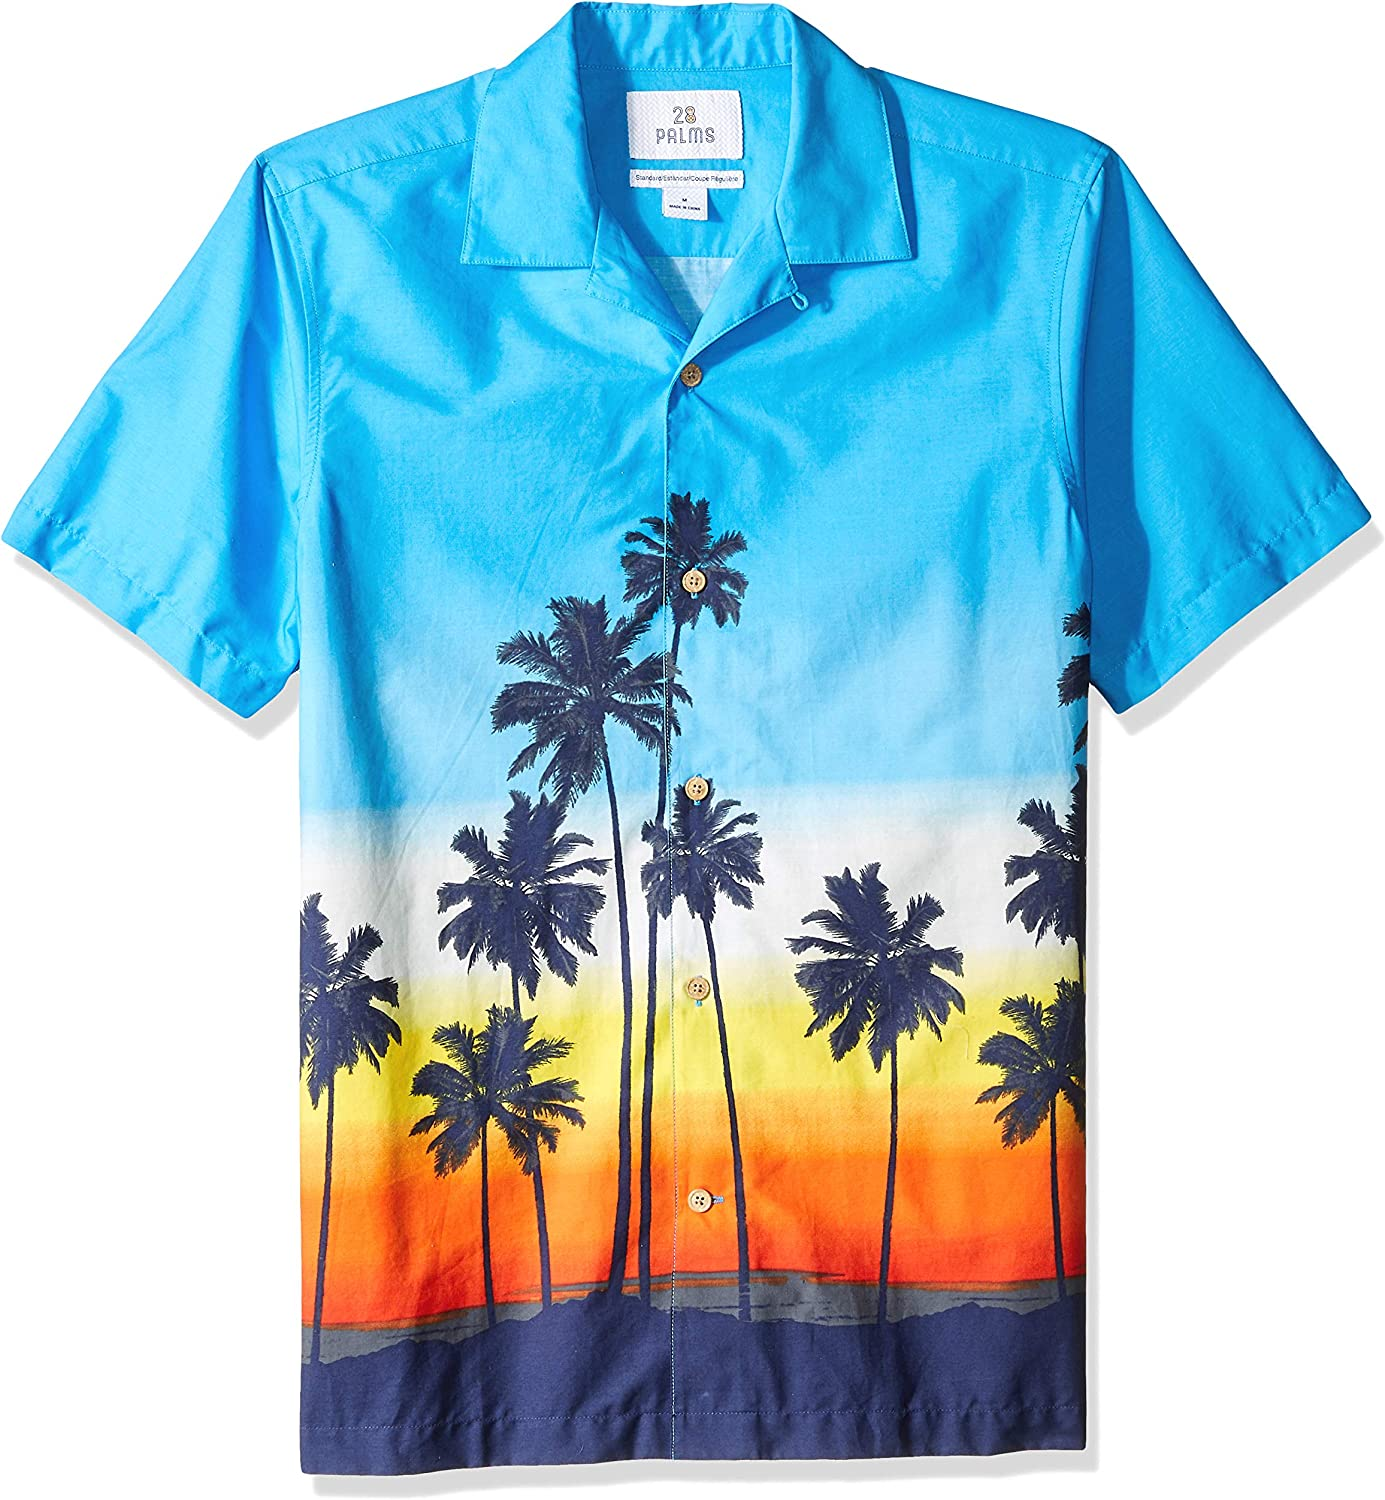 80s Men's Clothing | Shirts, Jeans, Jackets for Guys Amazon Brand - 28 Palms Mens Standard-Fit 100% Cotton Tropical Hawaiian Shirt $23.00 AT vintagedancer.com